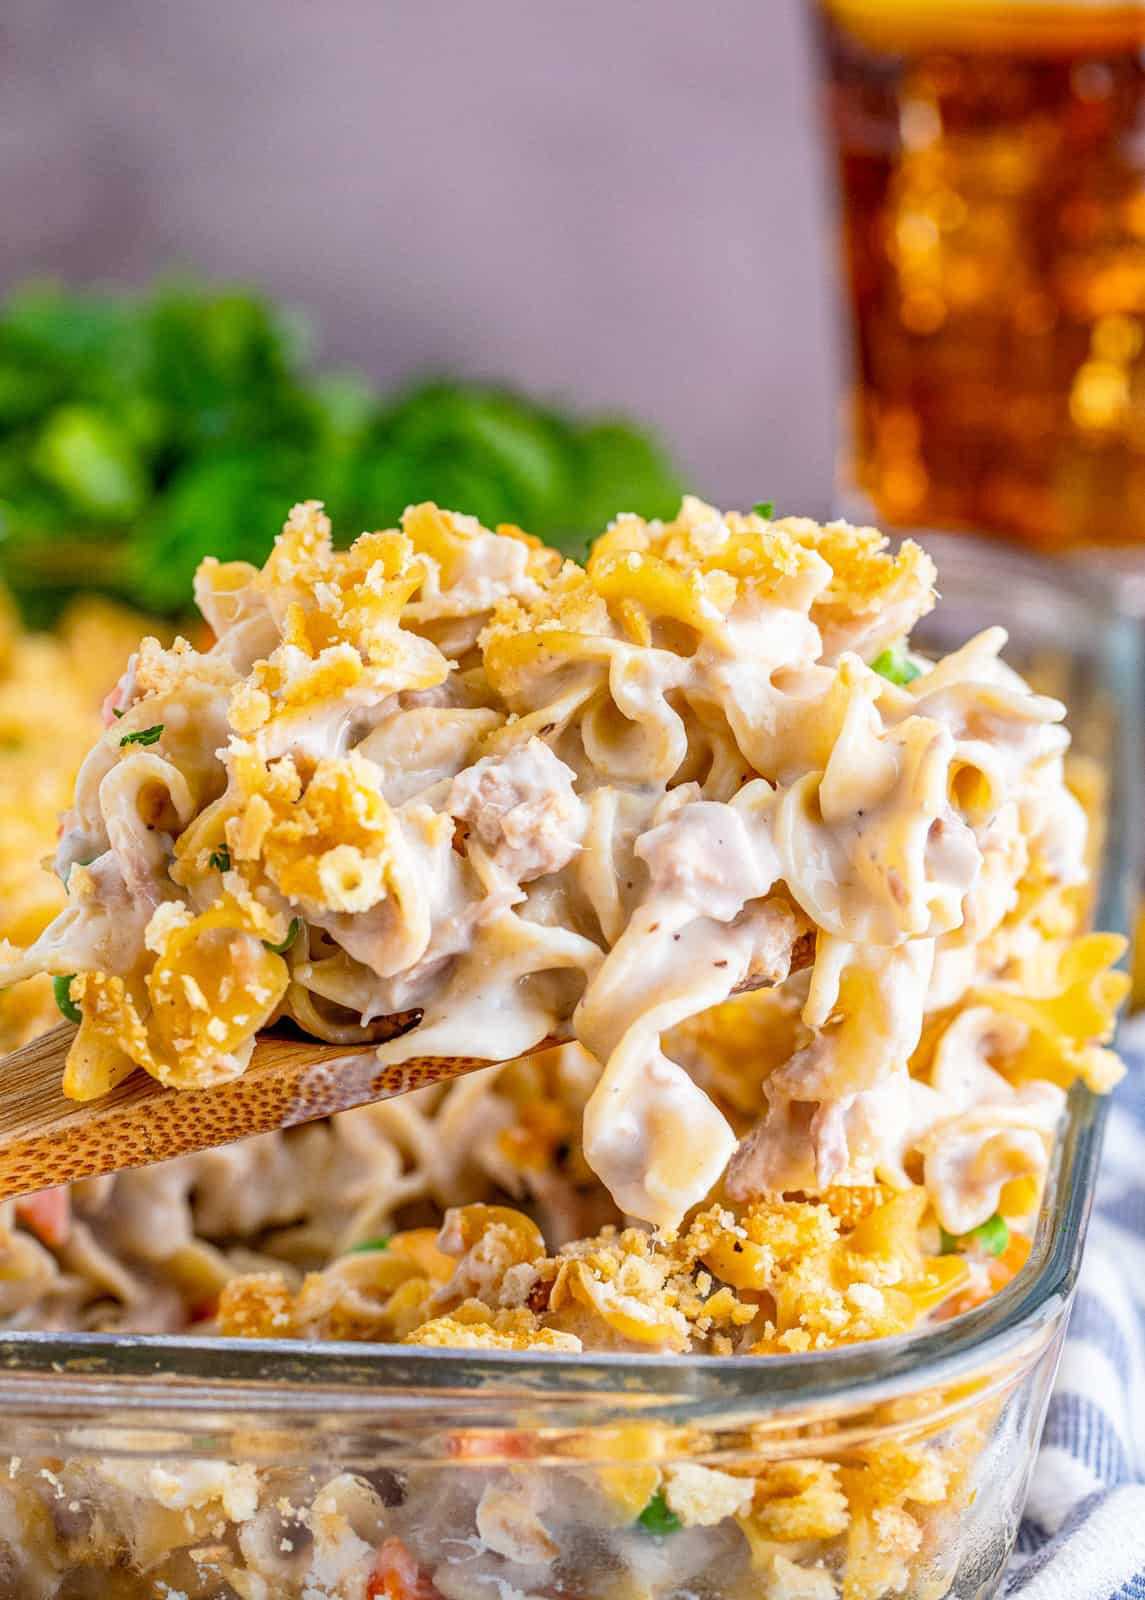 Wooden spoon scooping the Tuna Noodle Casserole Recipe out of baking pan.